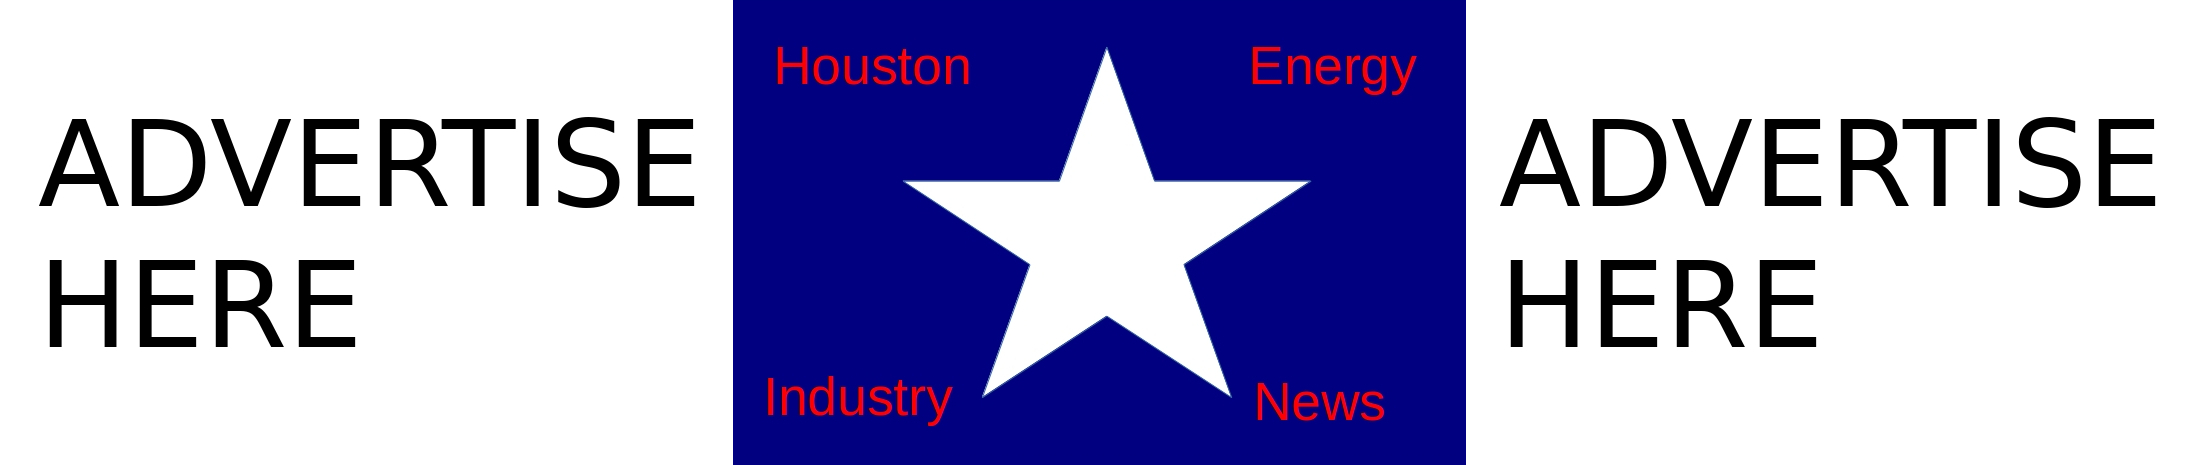 Houston Energy Industry News